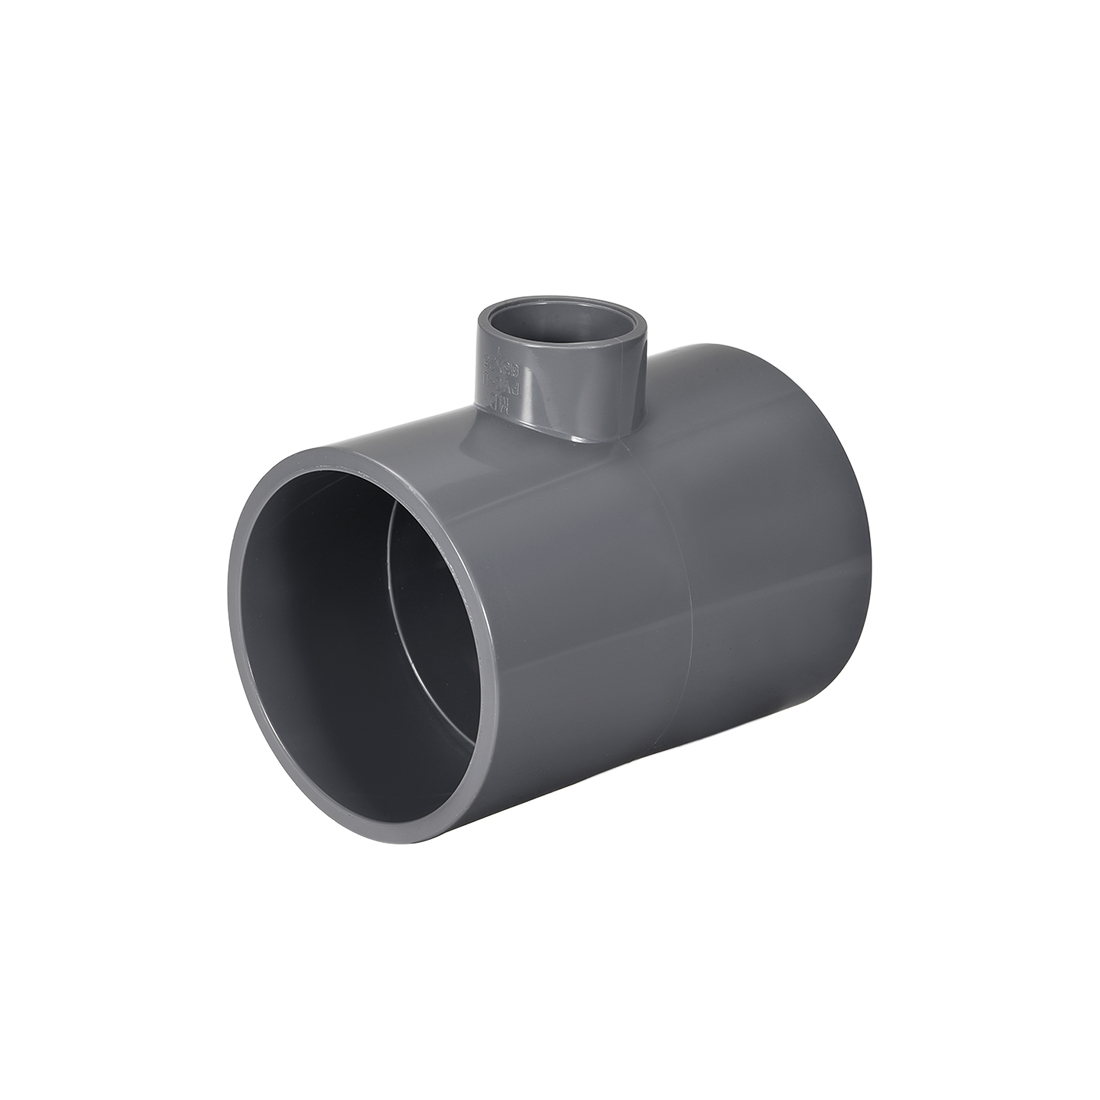 PVC Pipe Fitting Tee 401-Series Gray 1-inch x 2-1/2inch Socket